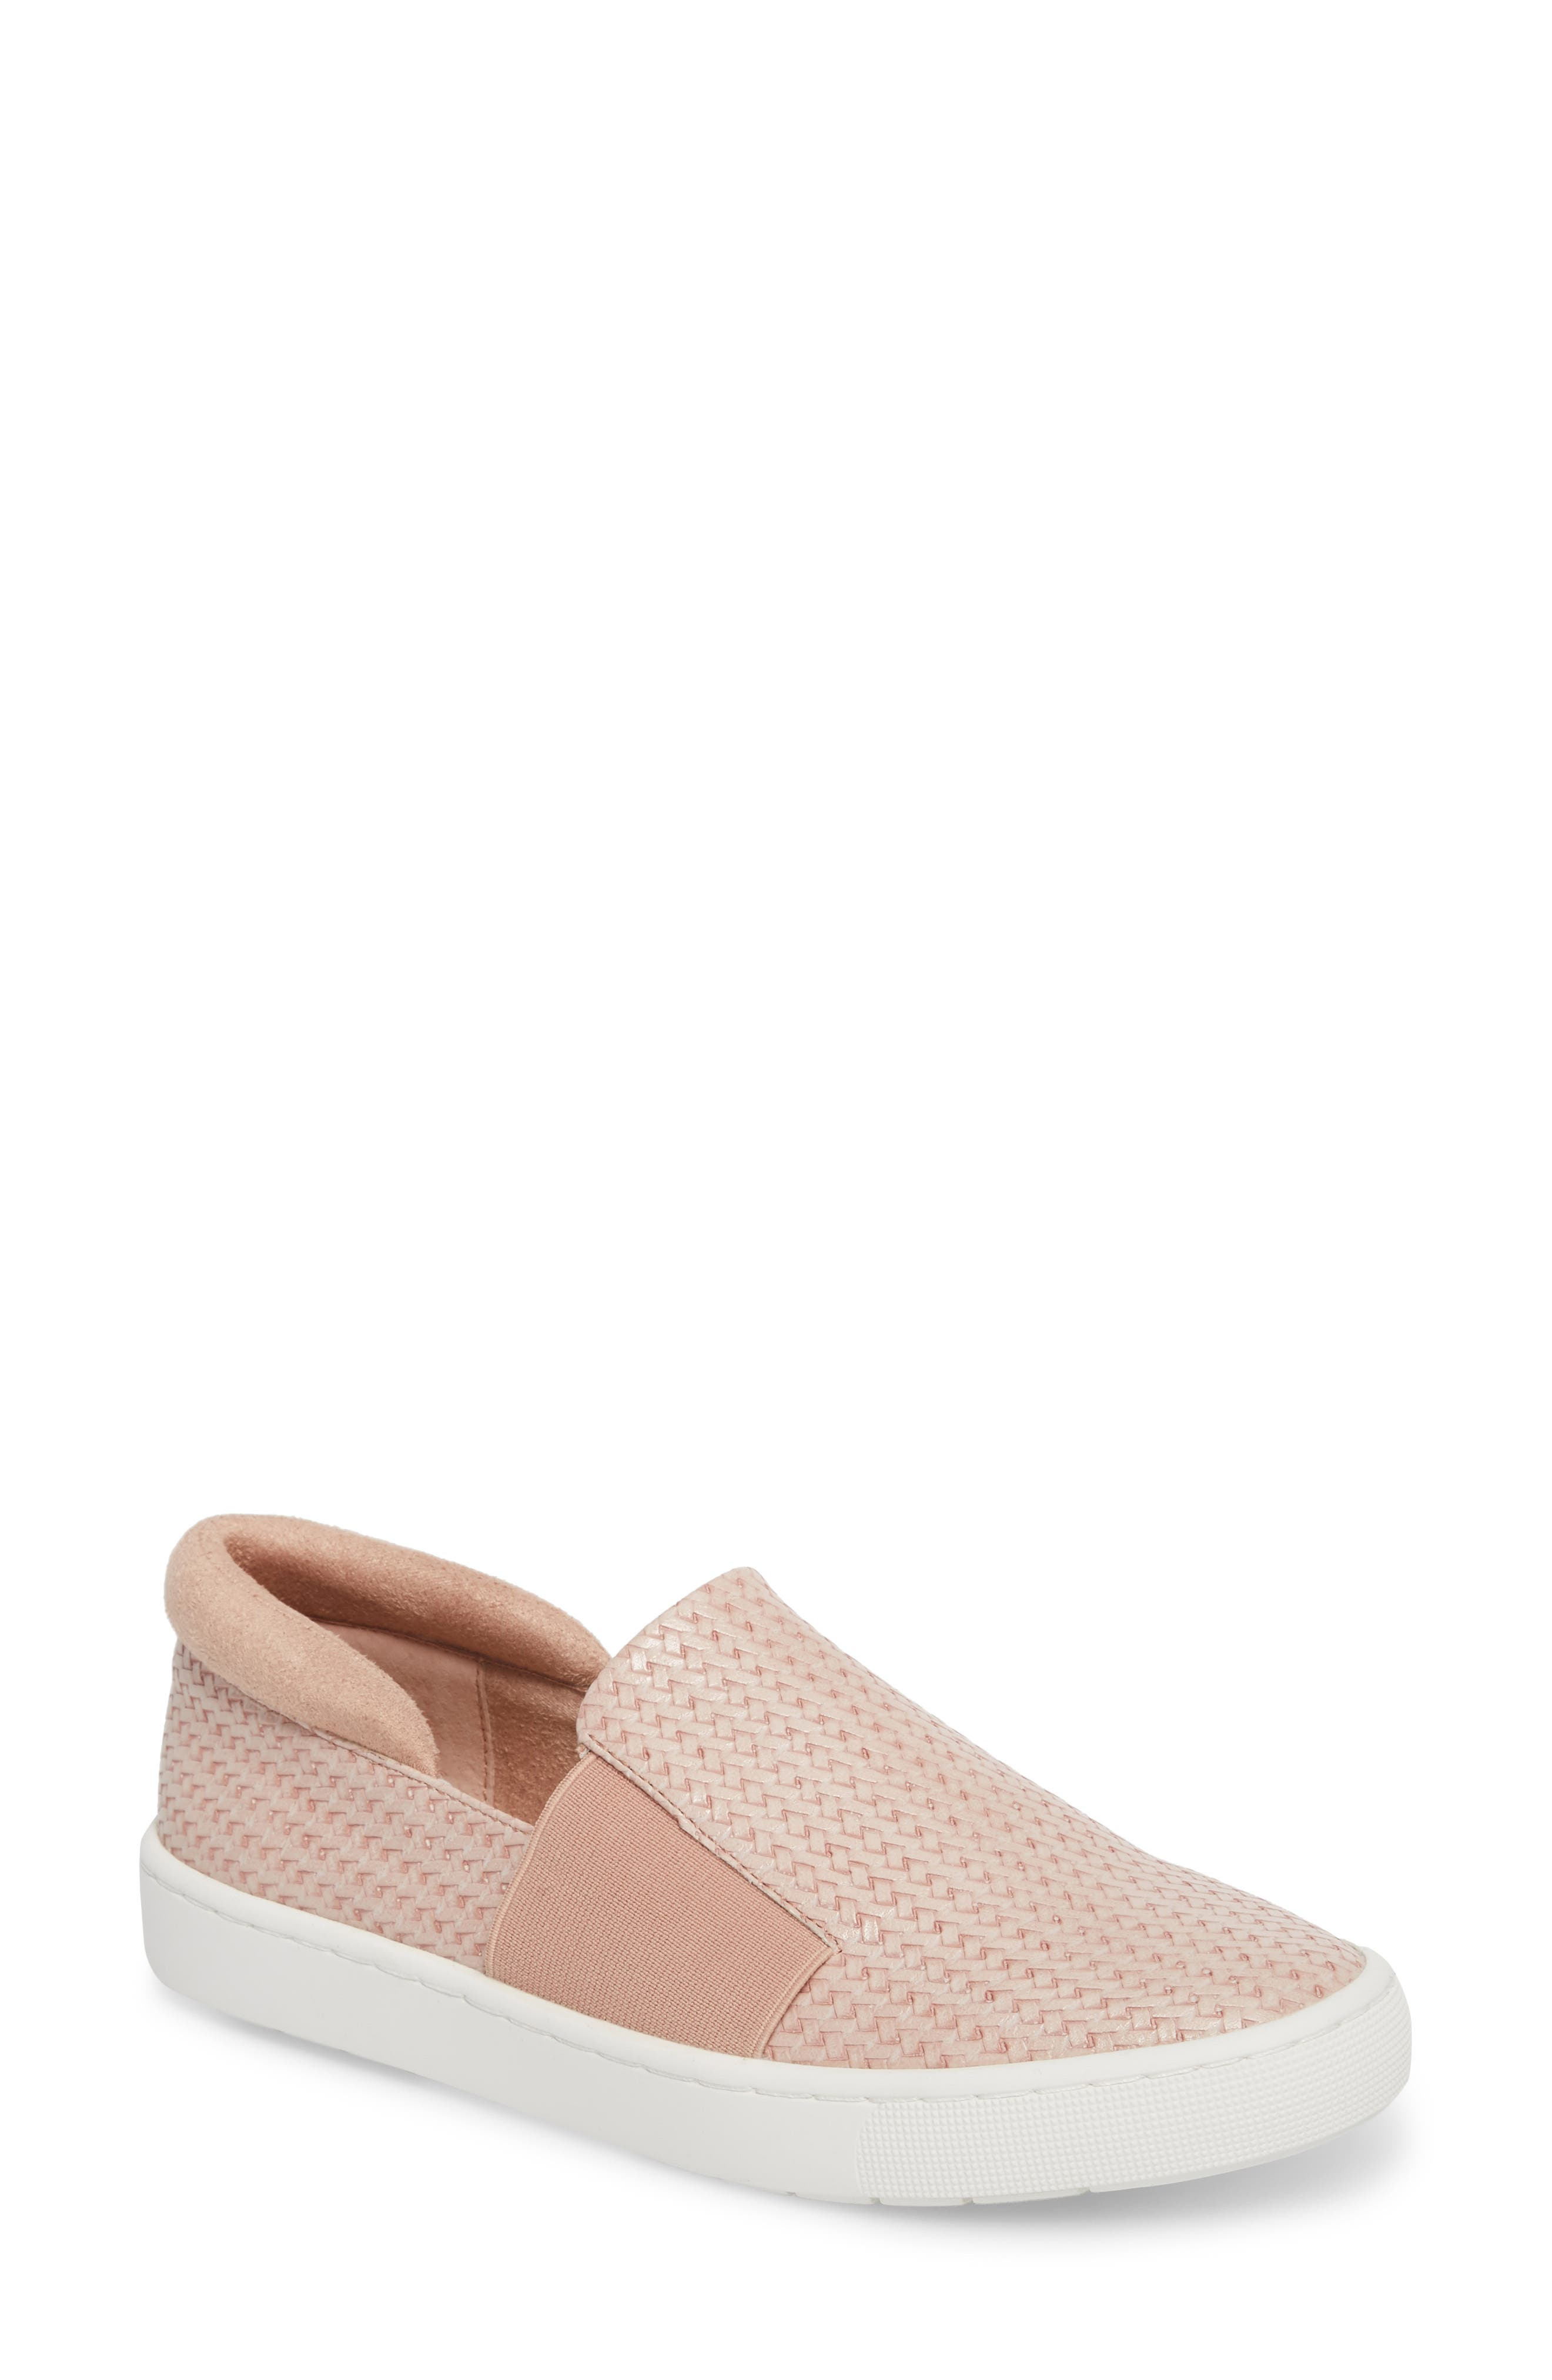 Ramp II Slip-On Sneaker,                             Main thumbnail 1, color,                             Blush Fabric